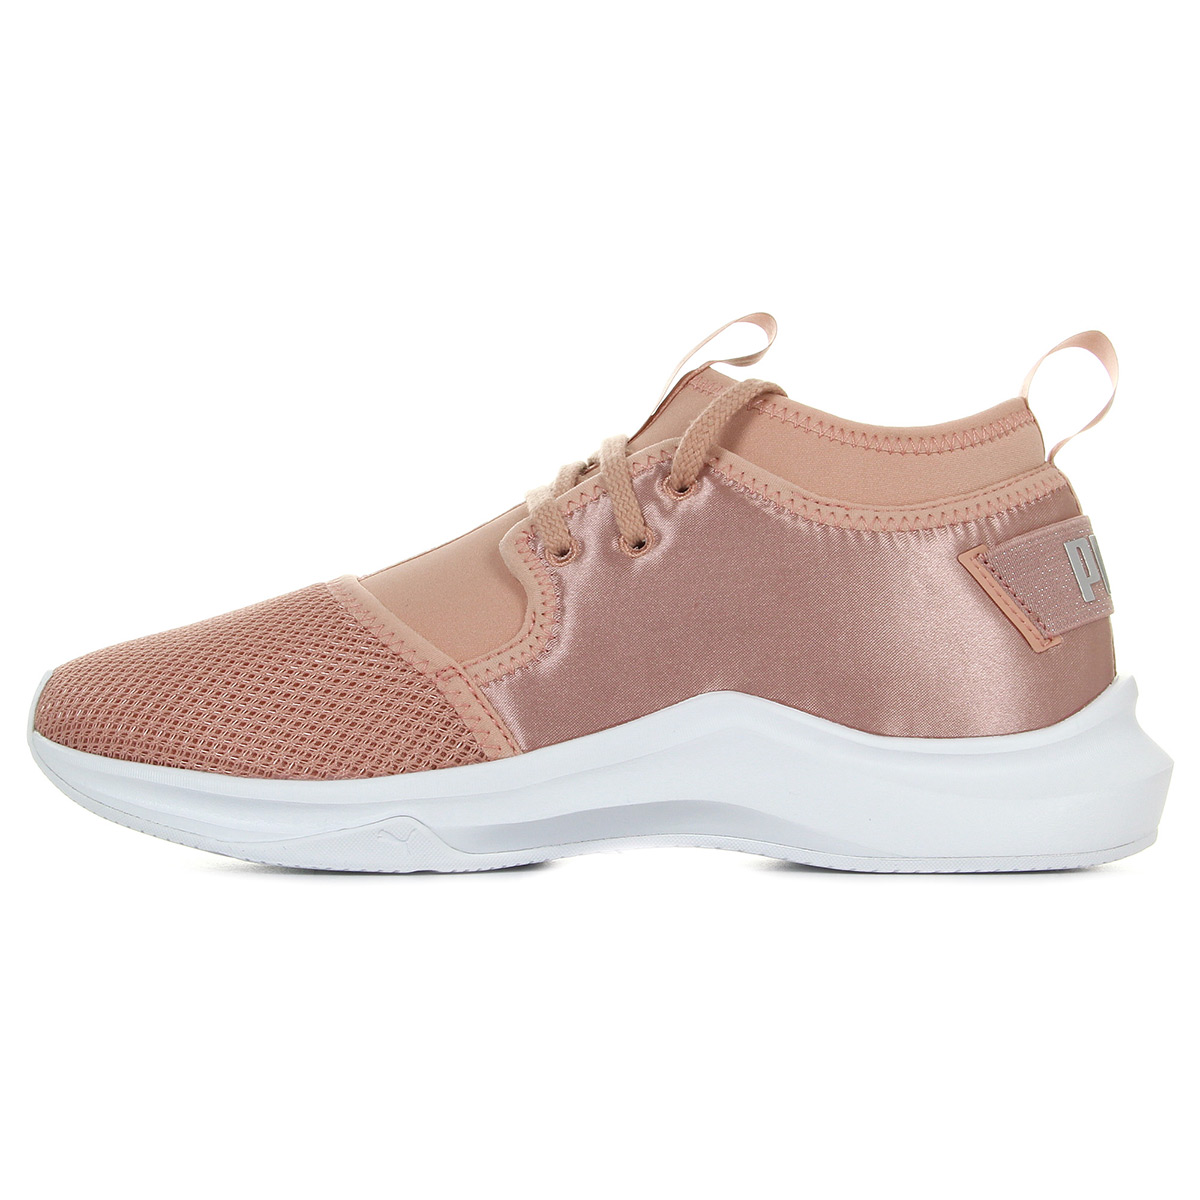 Puma Phenom Low Satin EP Wn's 19096902, Baskets mode femme